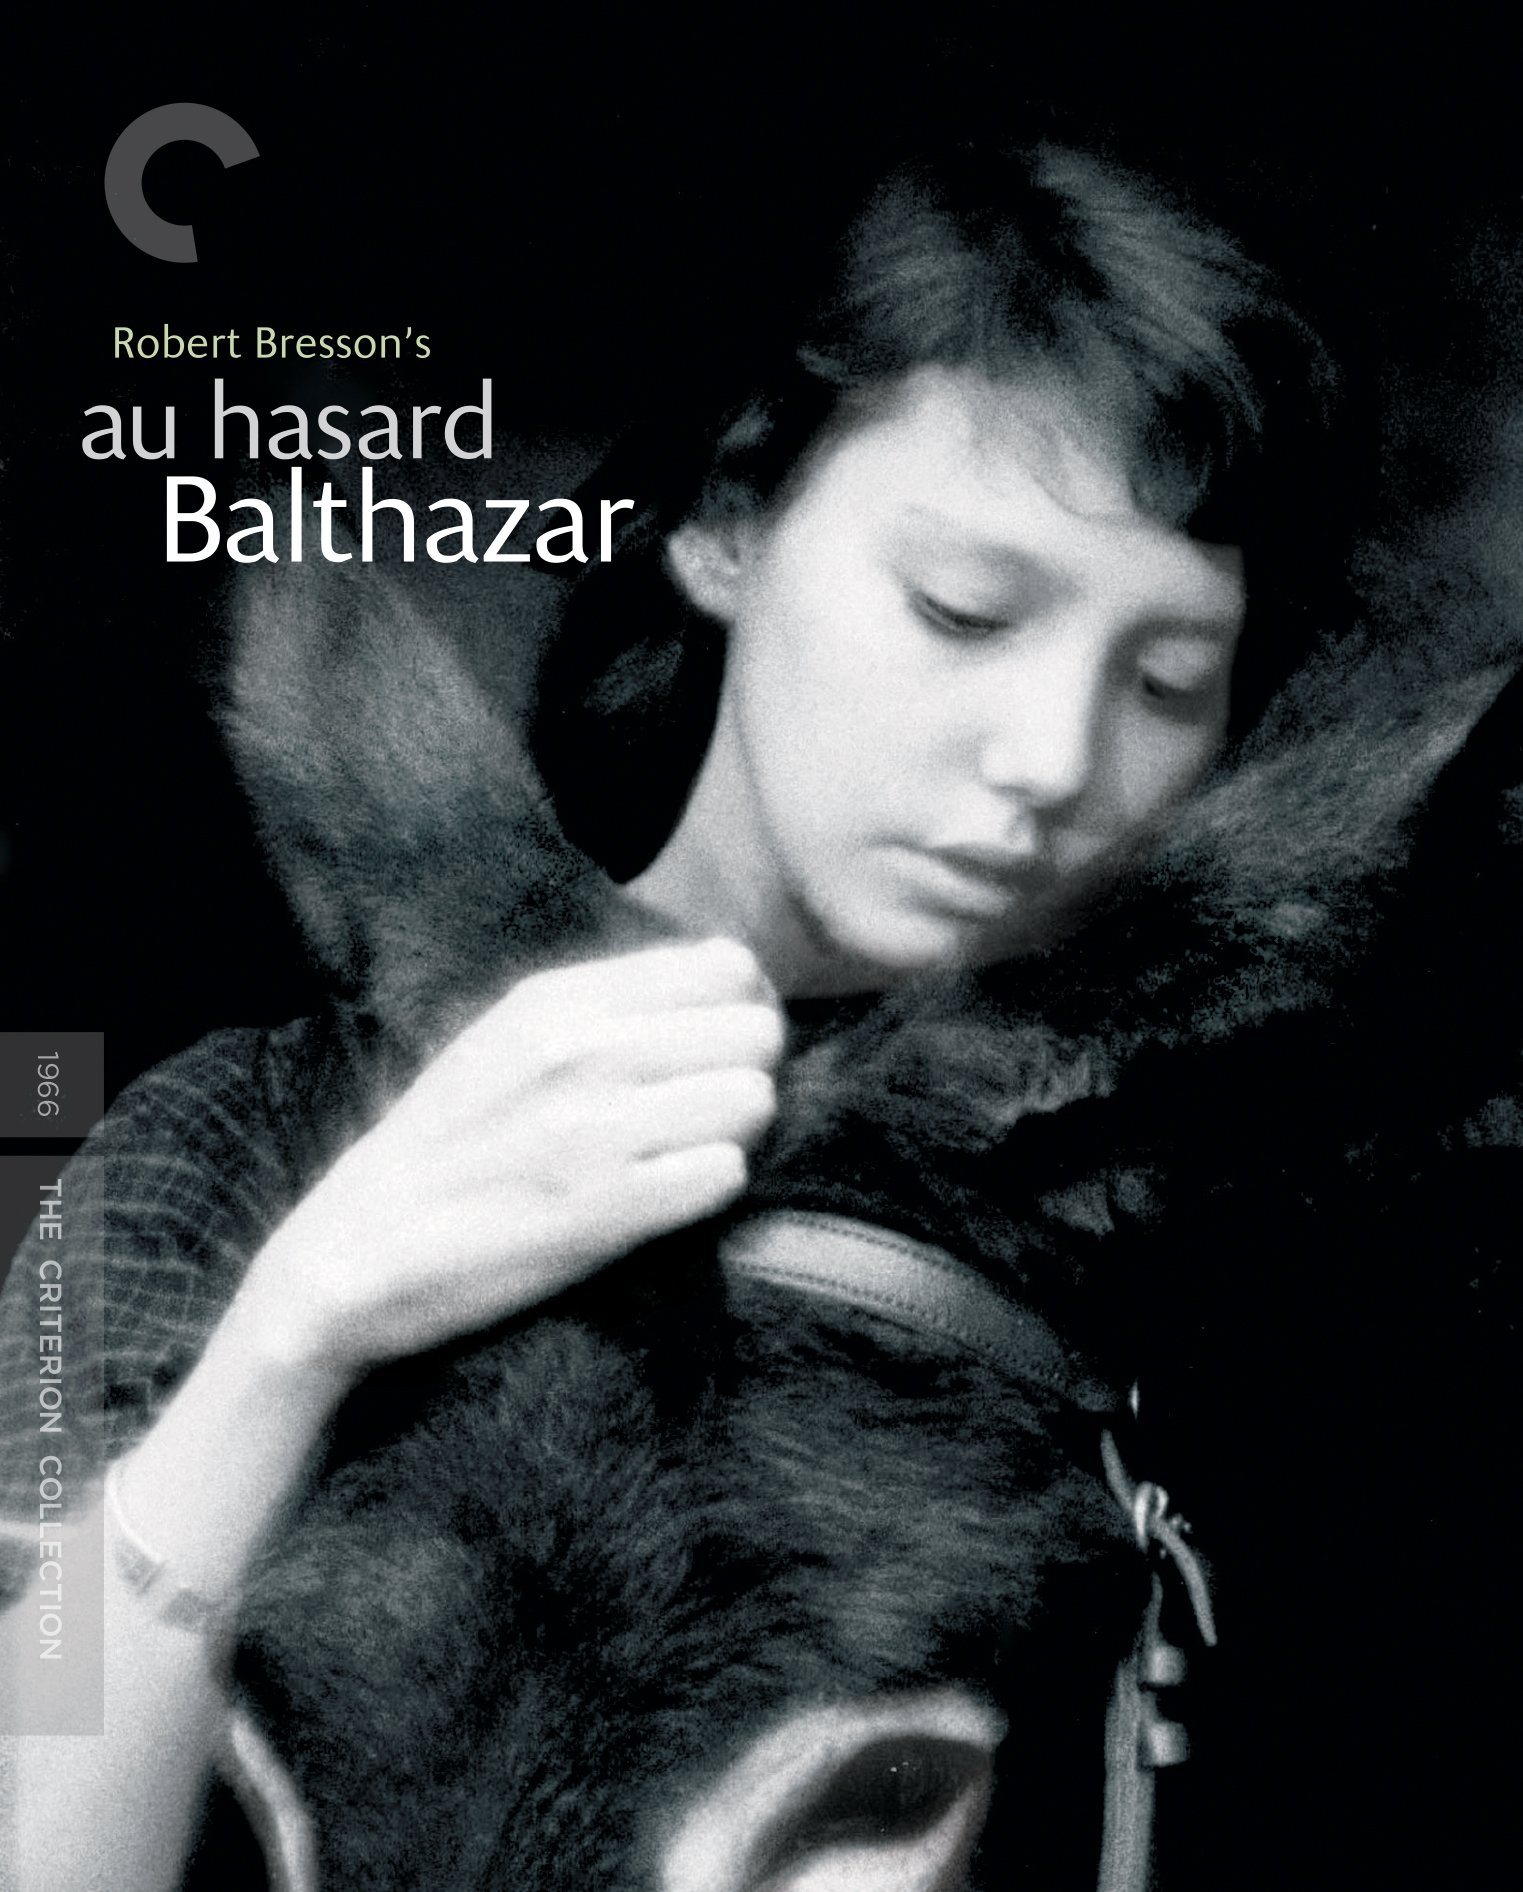 Blu-ray : Au Hasard Balthazar (criterion Collection) (Special Edition, 4K Mastering, Restored, Widescreen, Subtitled)